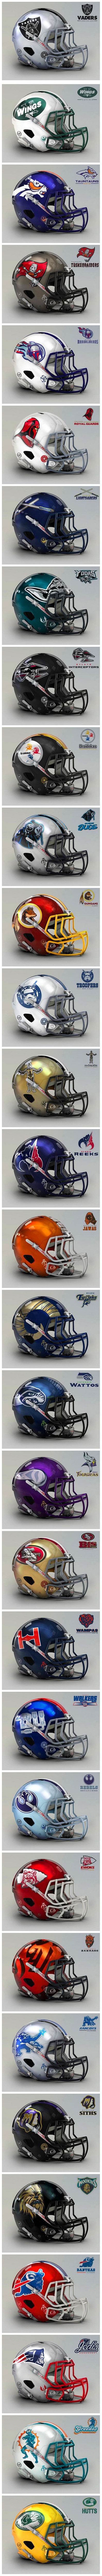 If all 32 NFL teams existed in the Star Wars universe, here is what the helmets might look like.